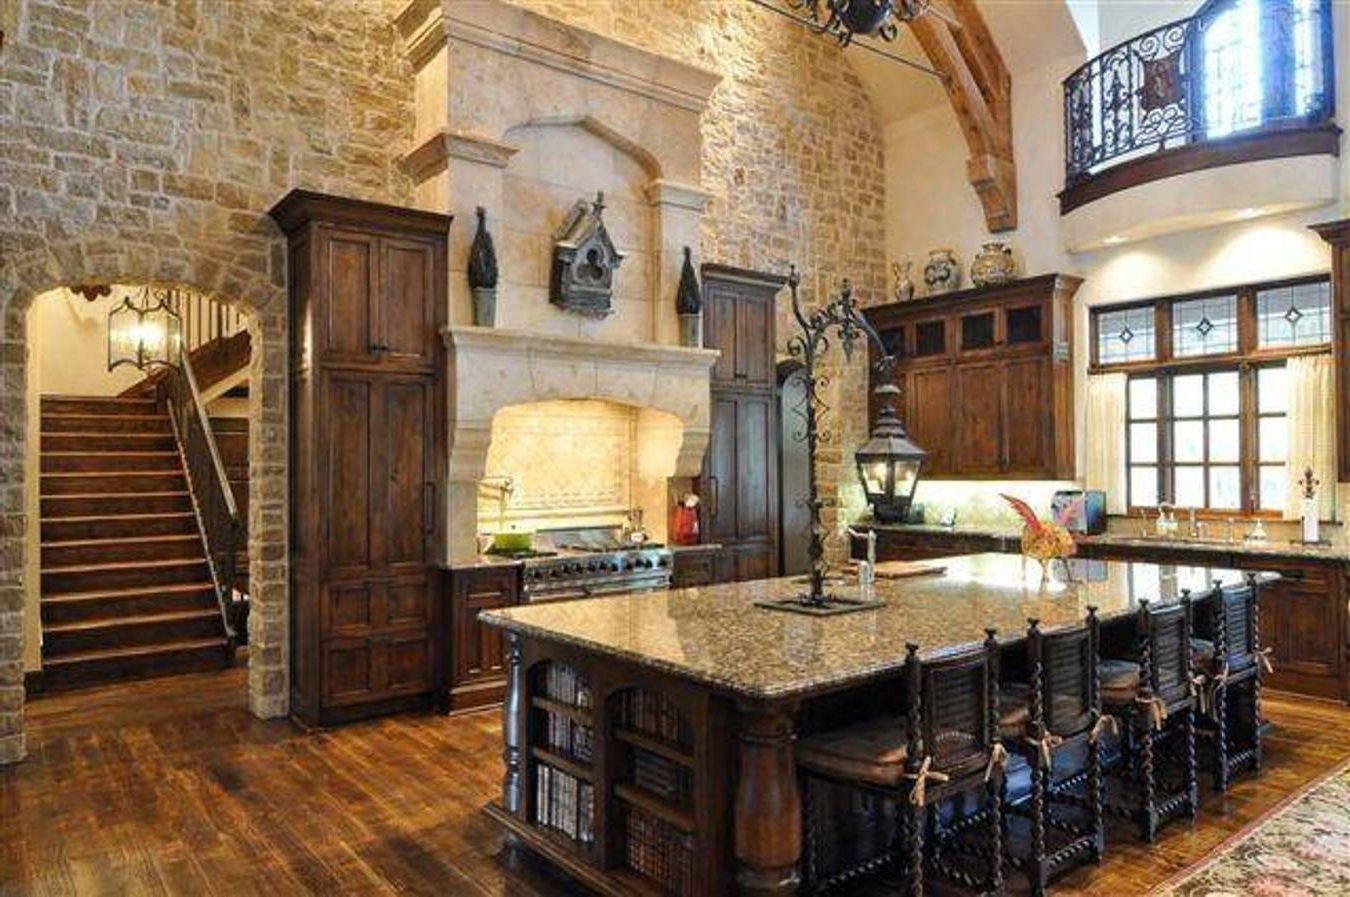 Best Kitchen Gallery: Mediterranean Rustic Tuscan Kitchen With Stone Wall House of Luxury Tuscan Kitchens on rachelxblog.com